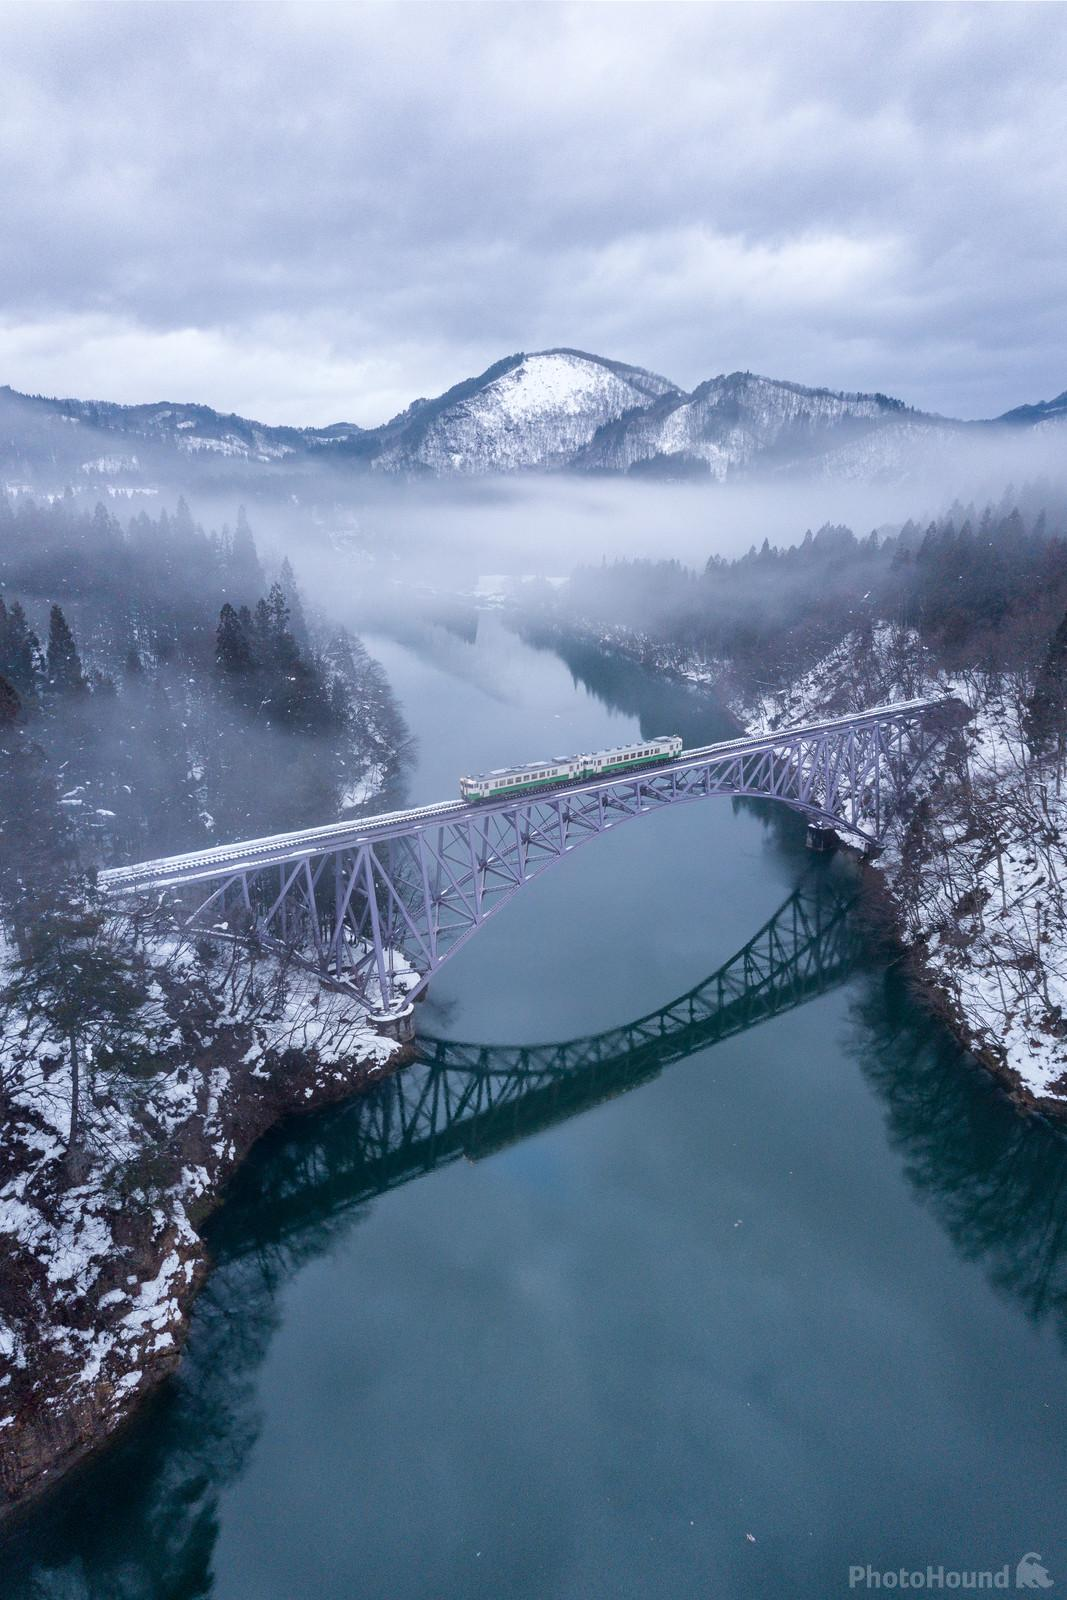 A drone photo of the bridge with a local train.